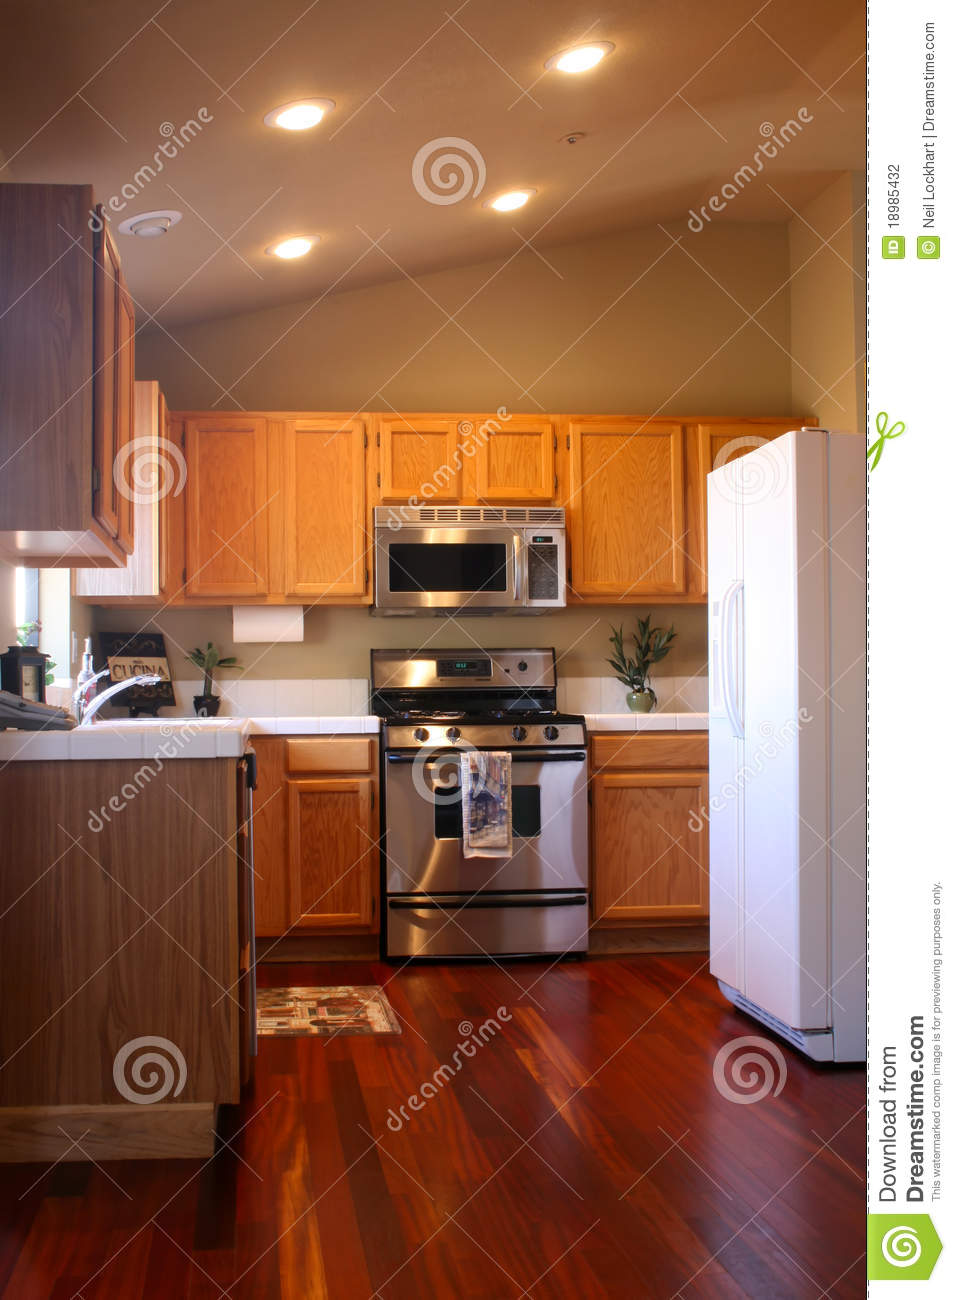 Cherry Wood Kitchen Stock Photo Image Of Kitchen Indoor